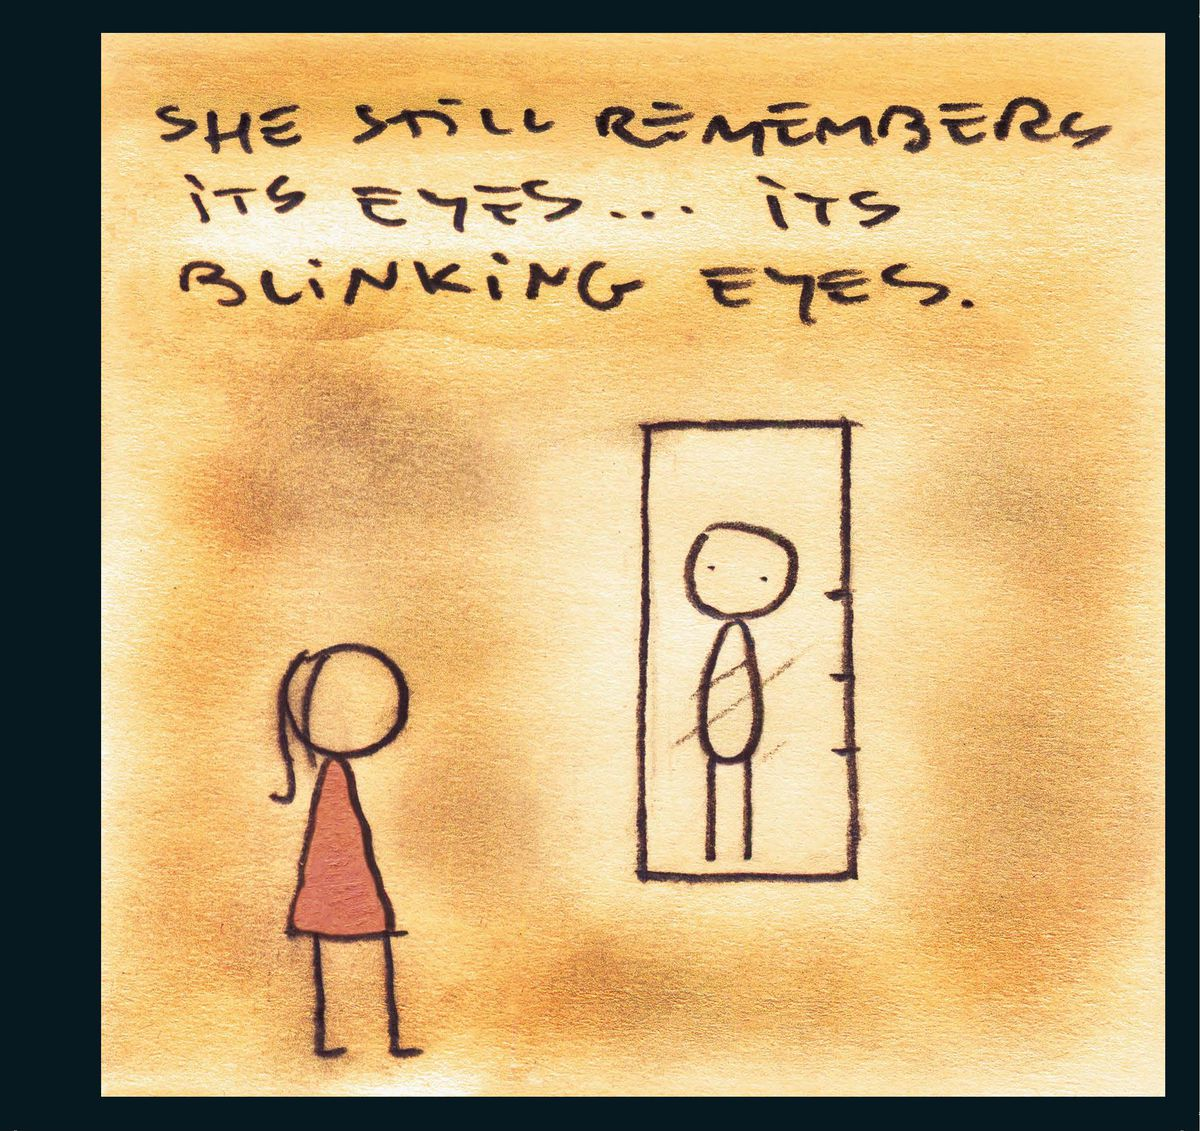 """An image of two stick figures with the text """"She Still Remembers Its Eyes ... Its Blinking Eyes."""""""